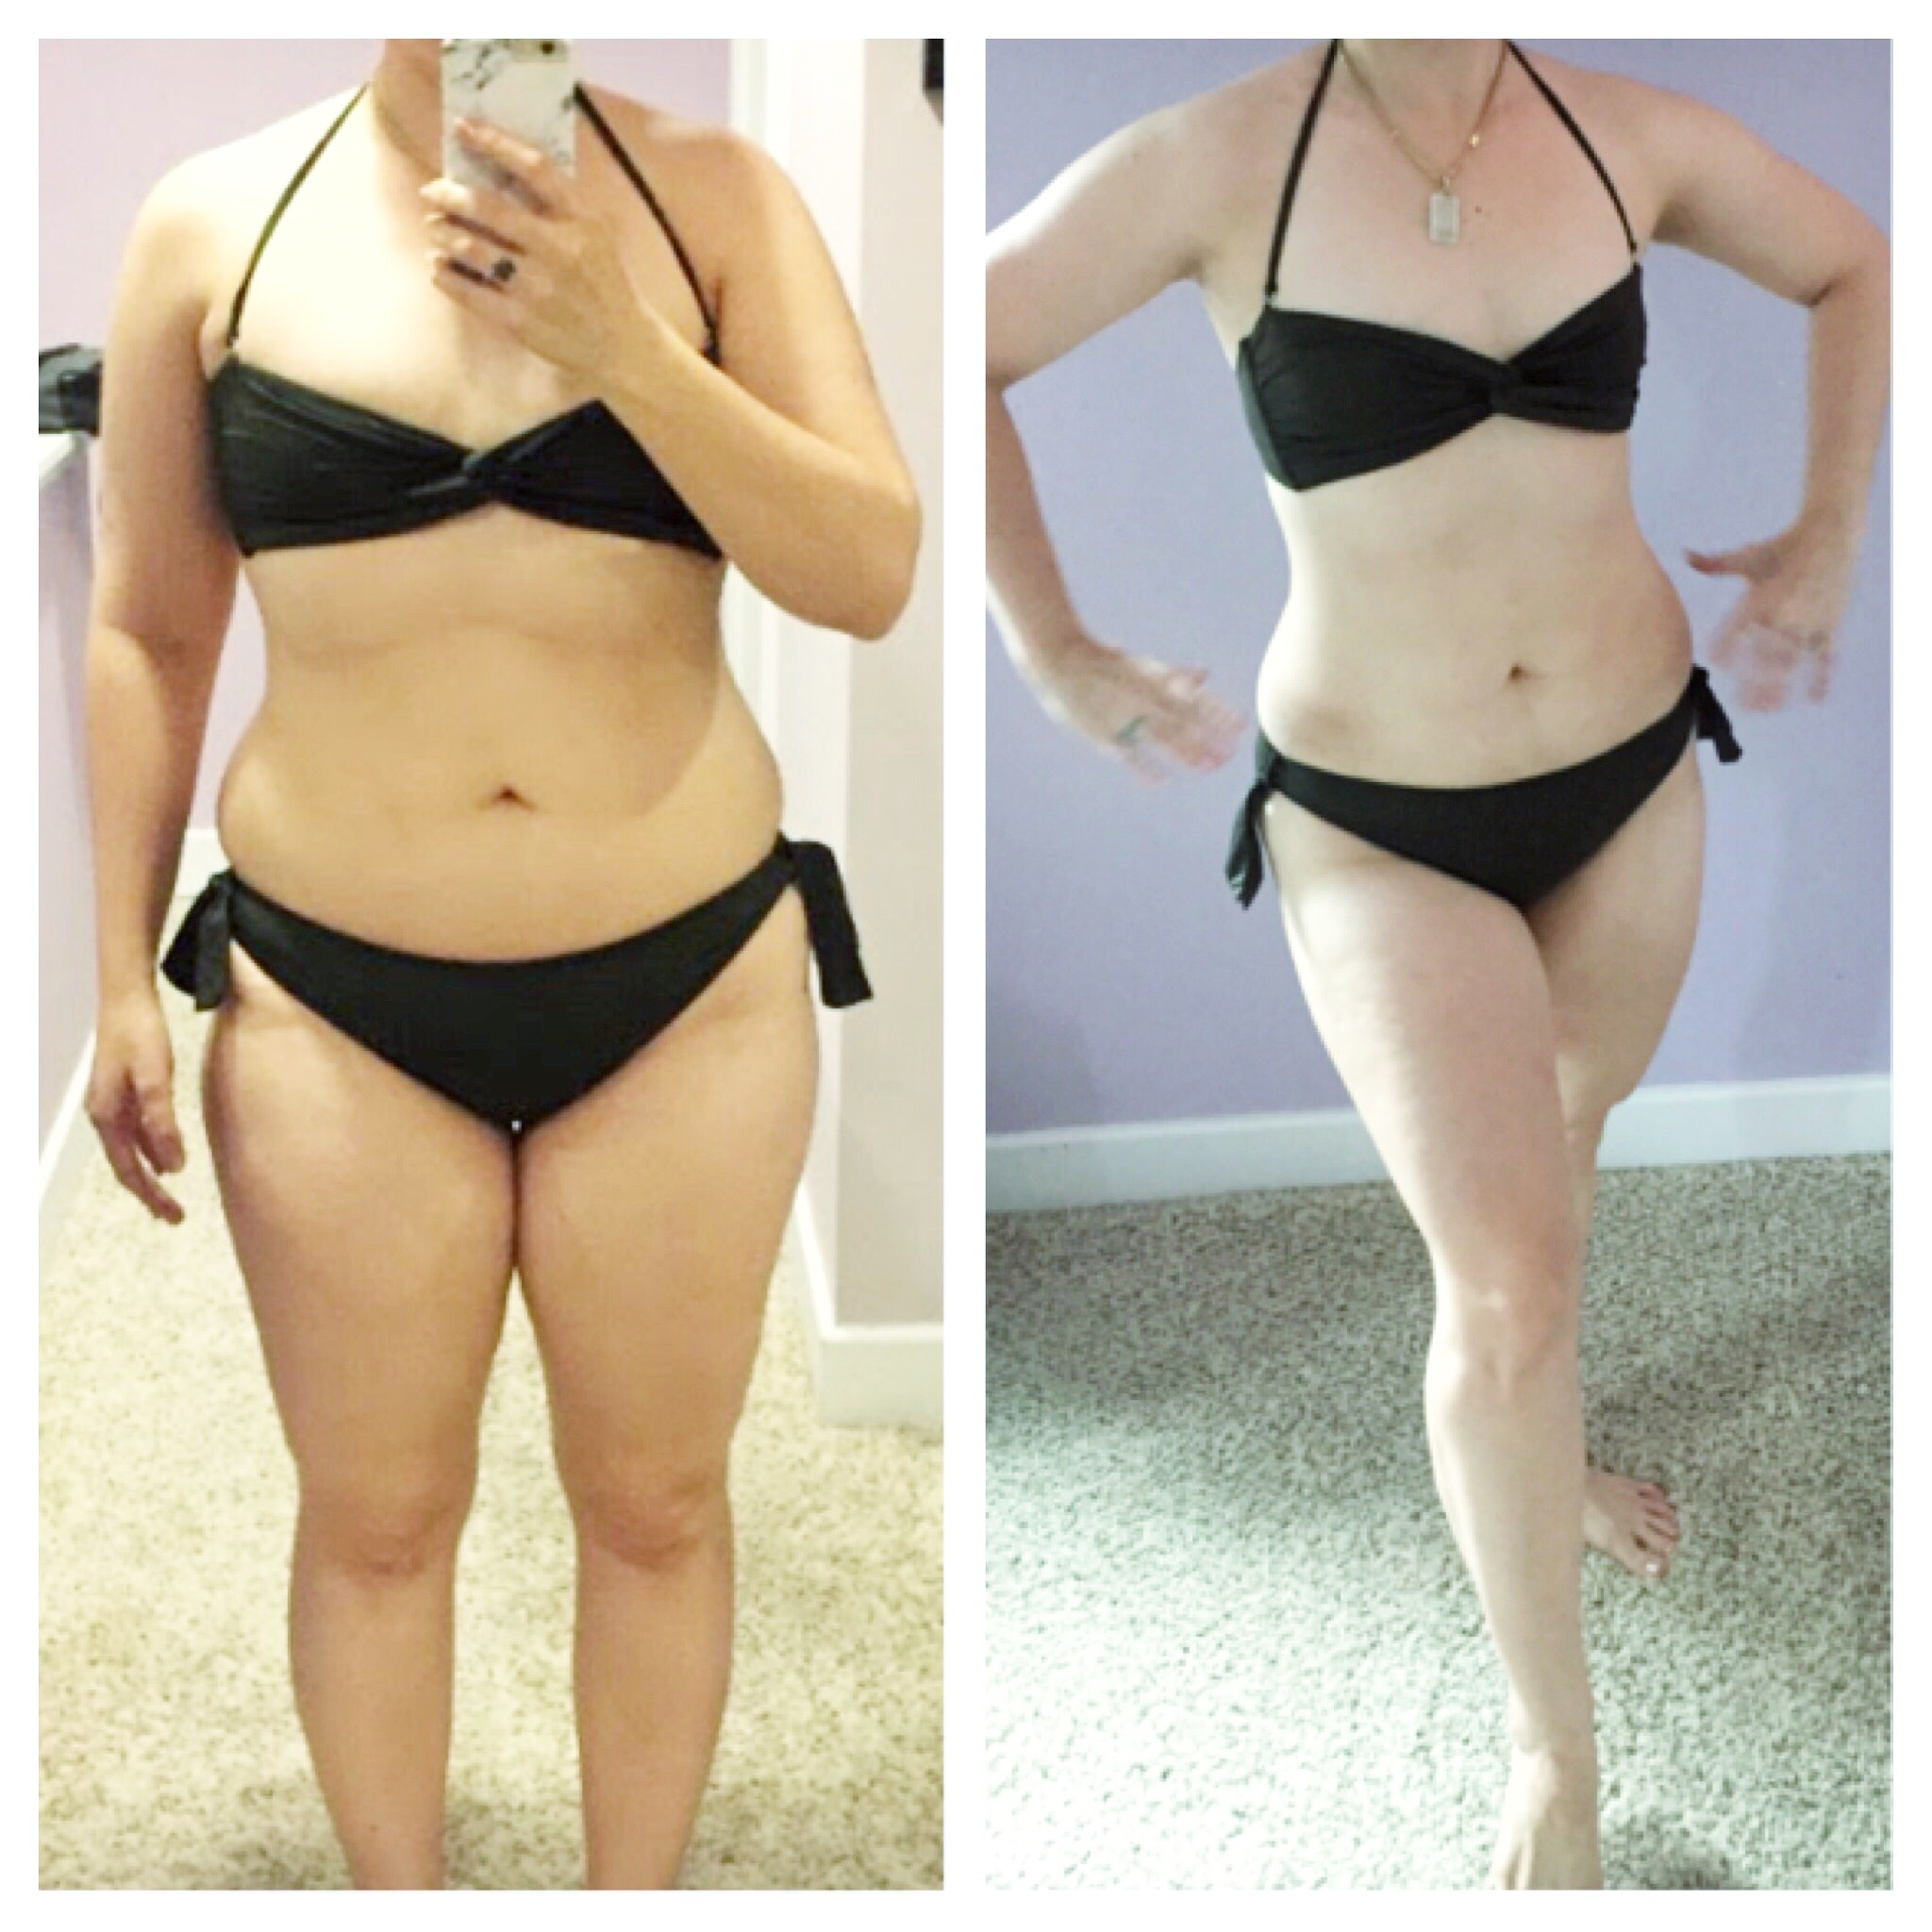 This Took 2 Months. By Eating High Fat. And Not Exercising.